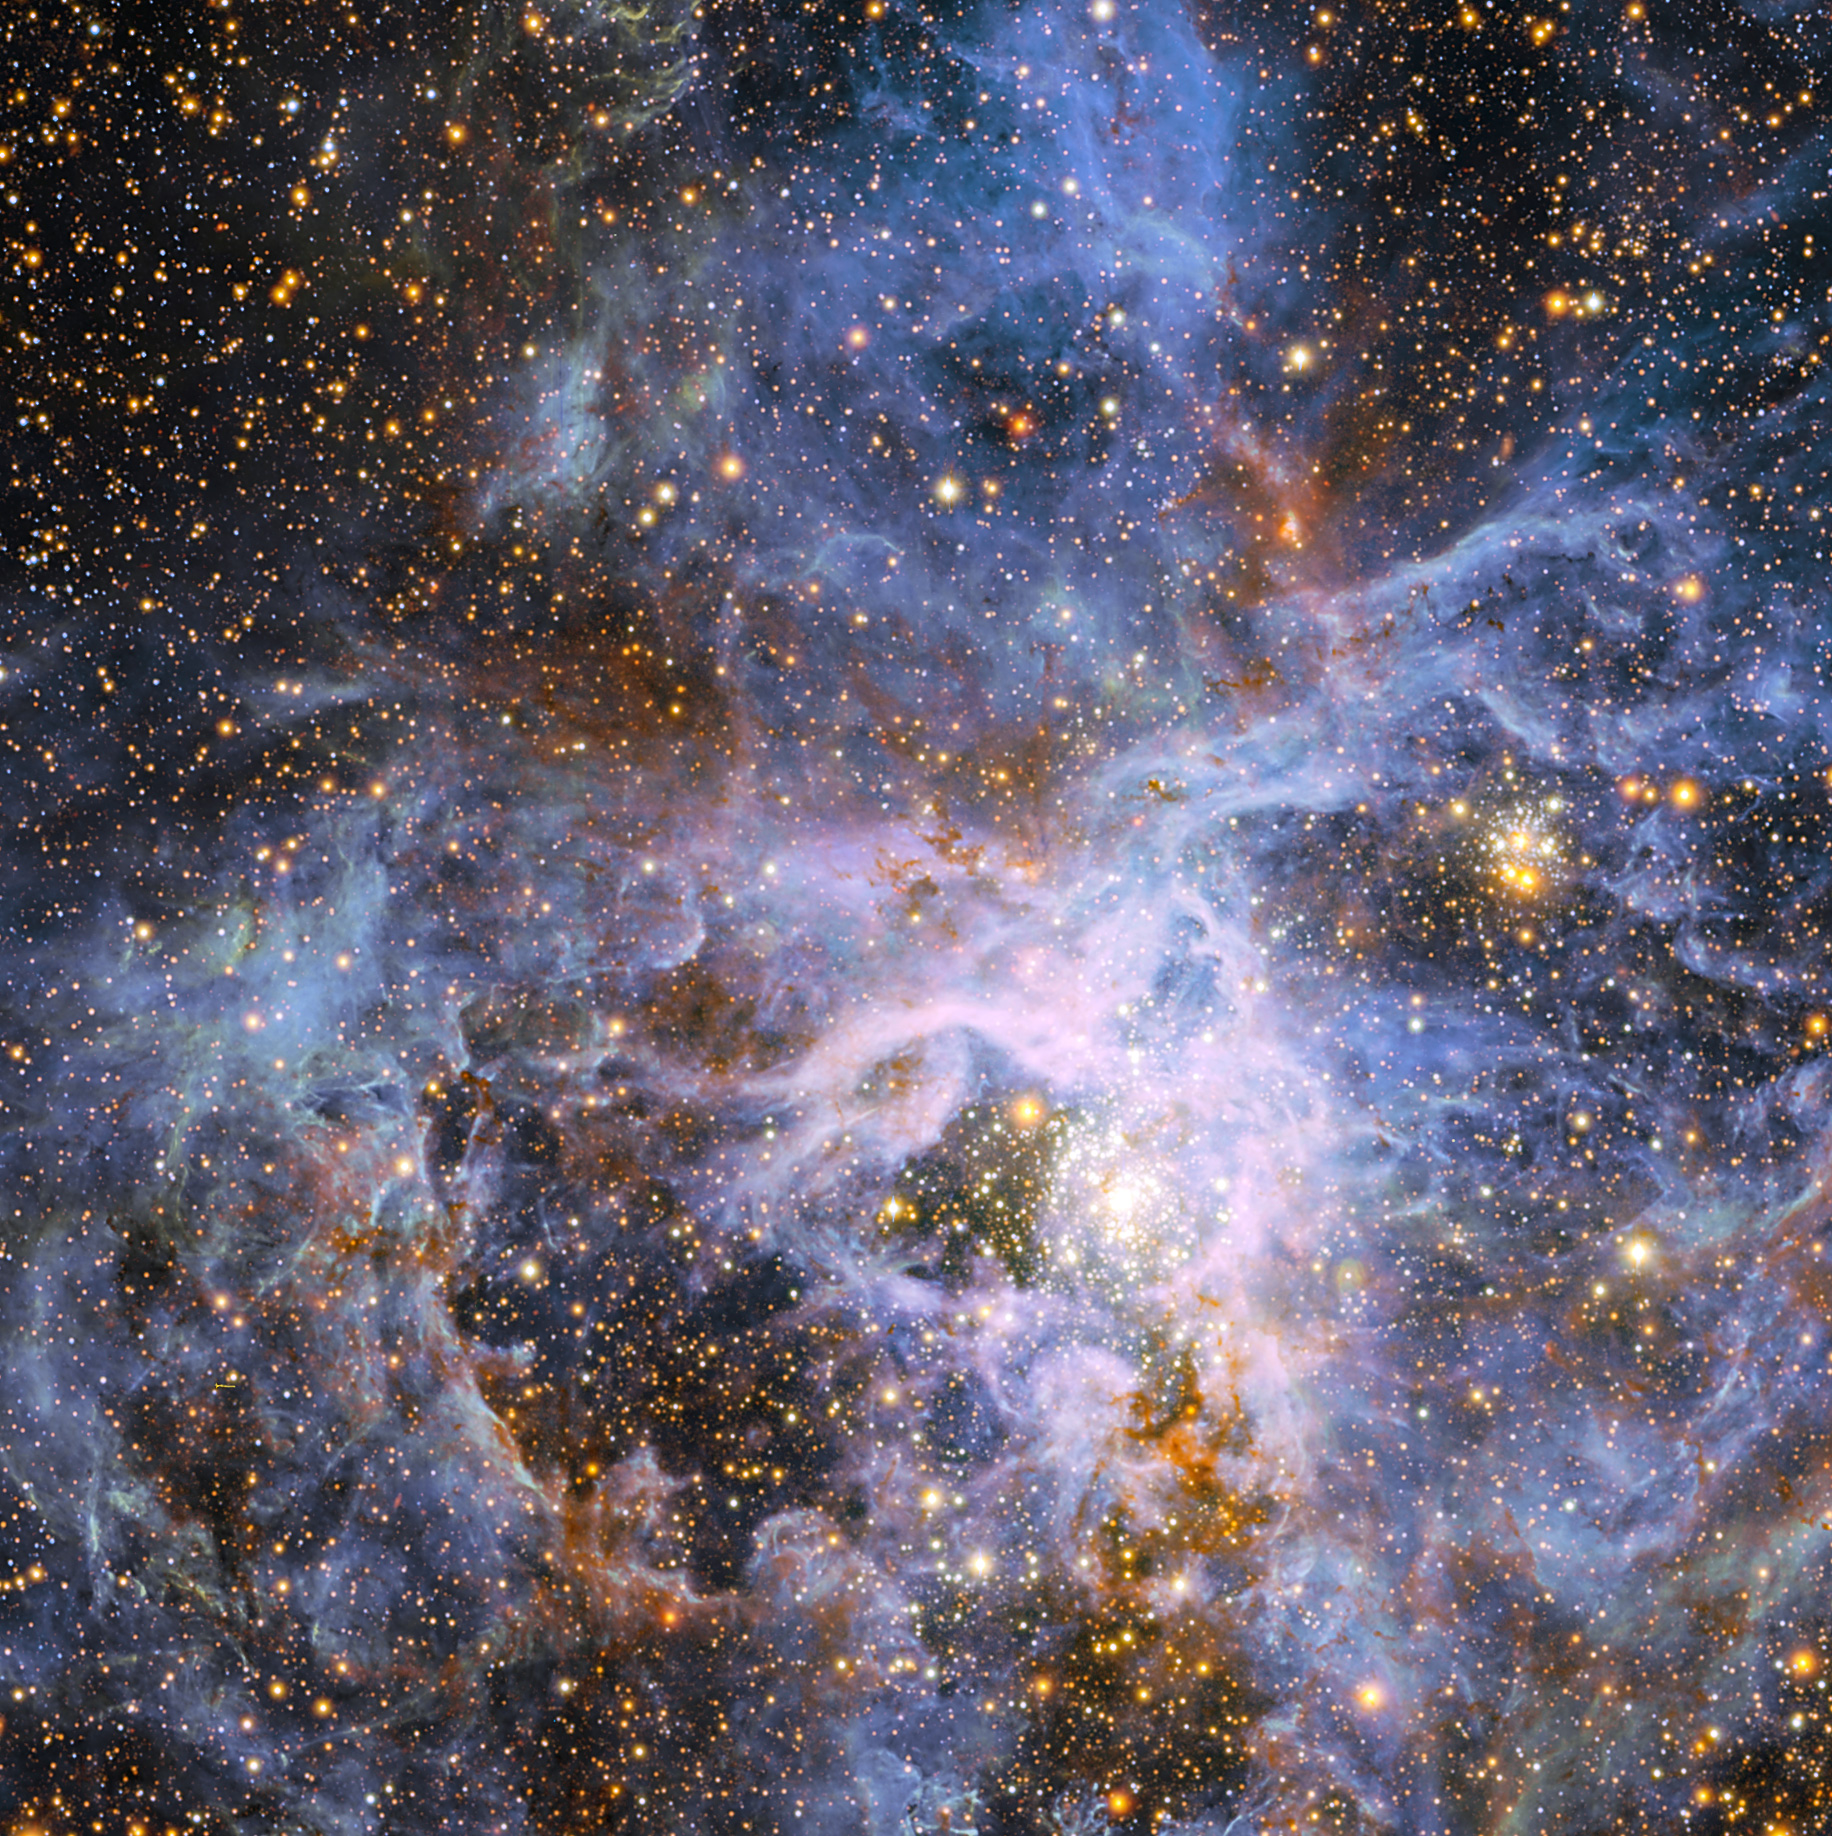 eso tarantula nebula wallpaper - photo #10